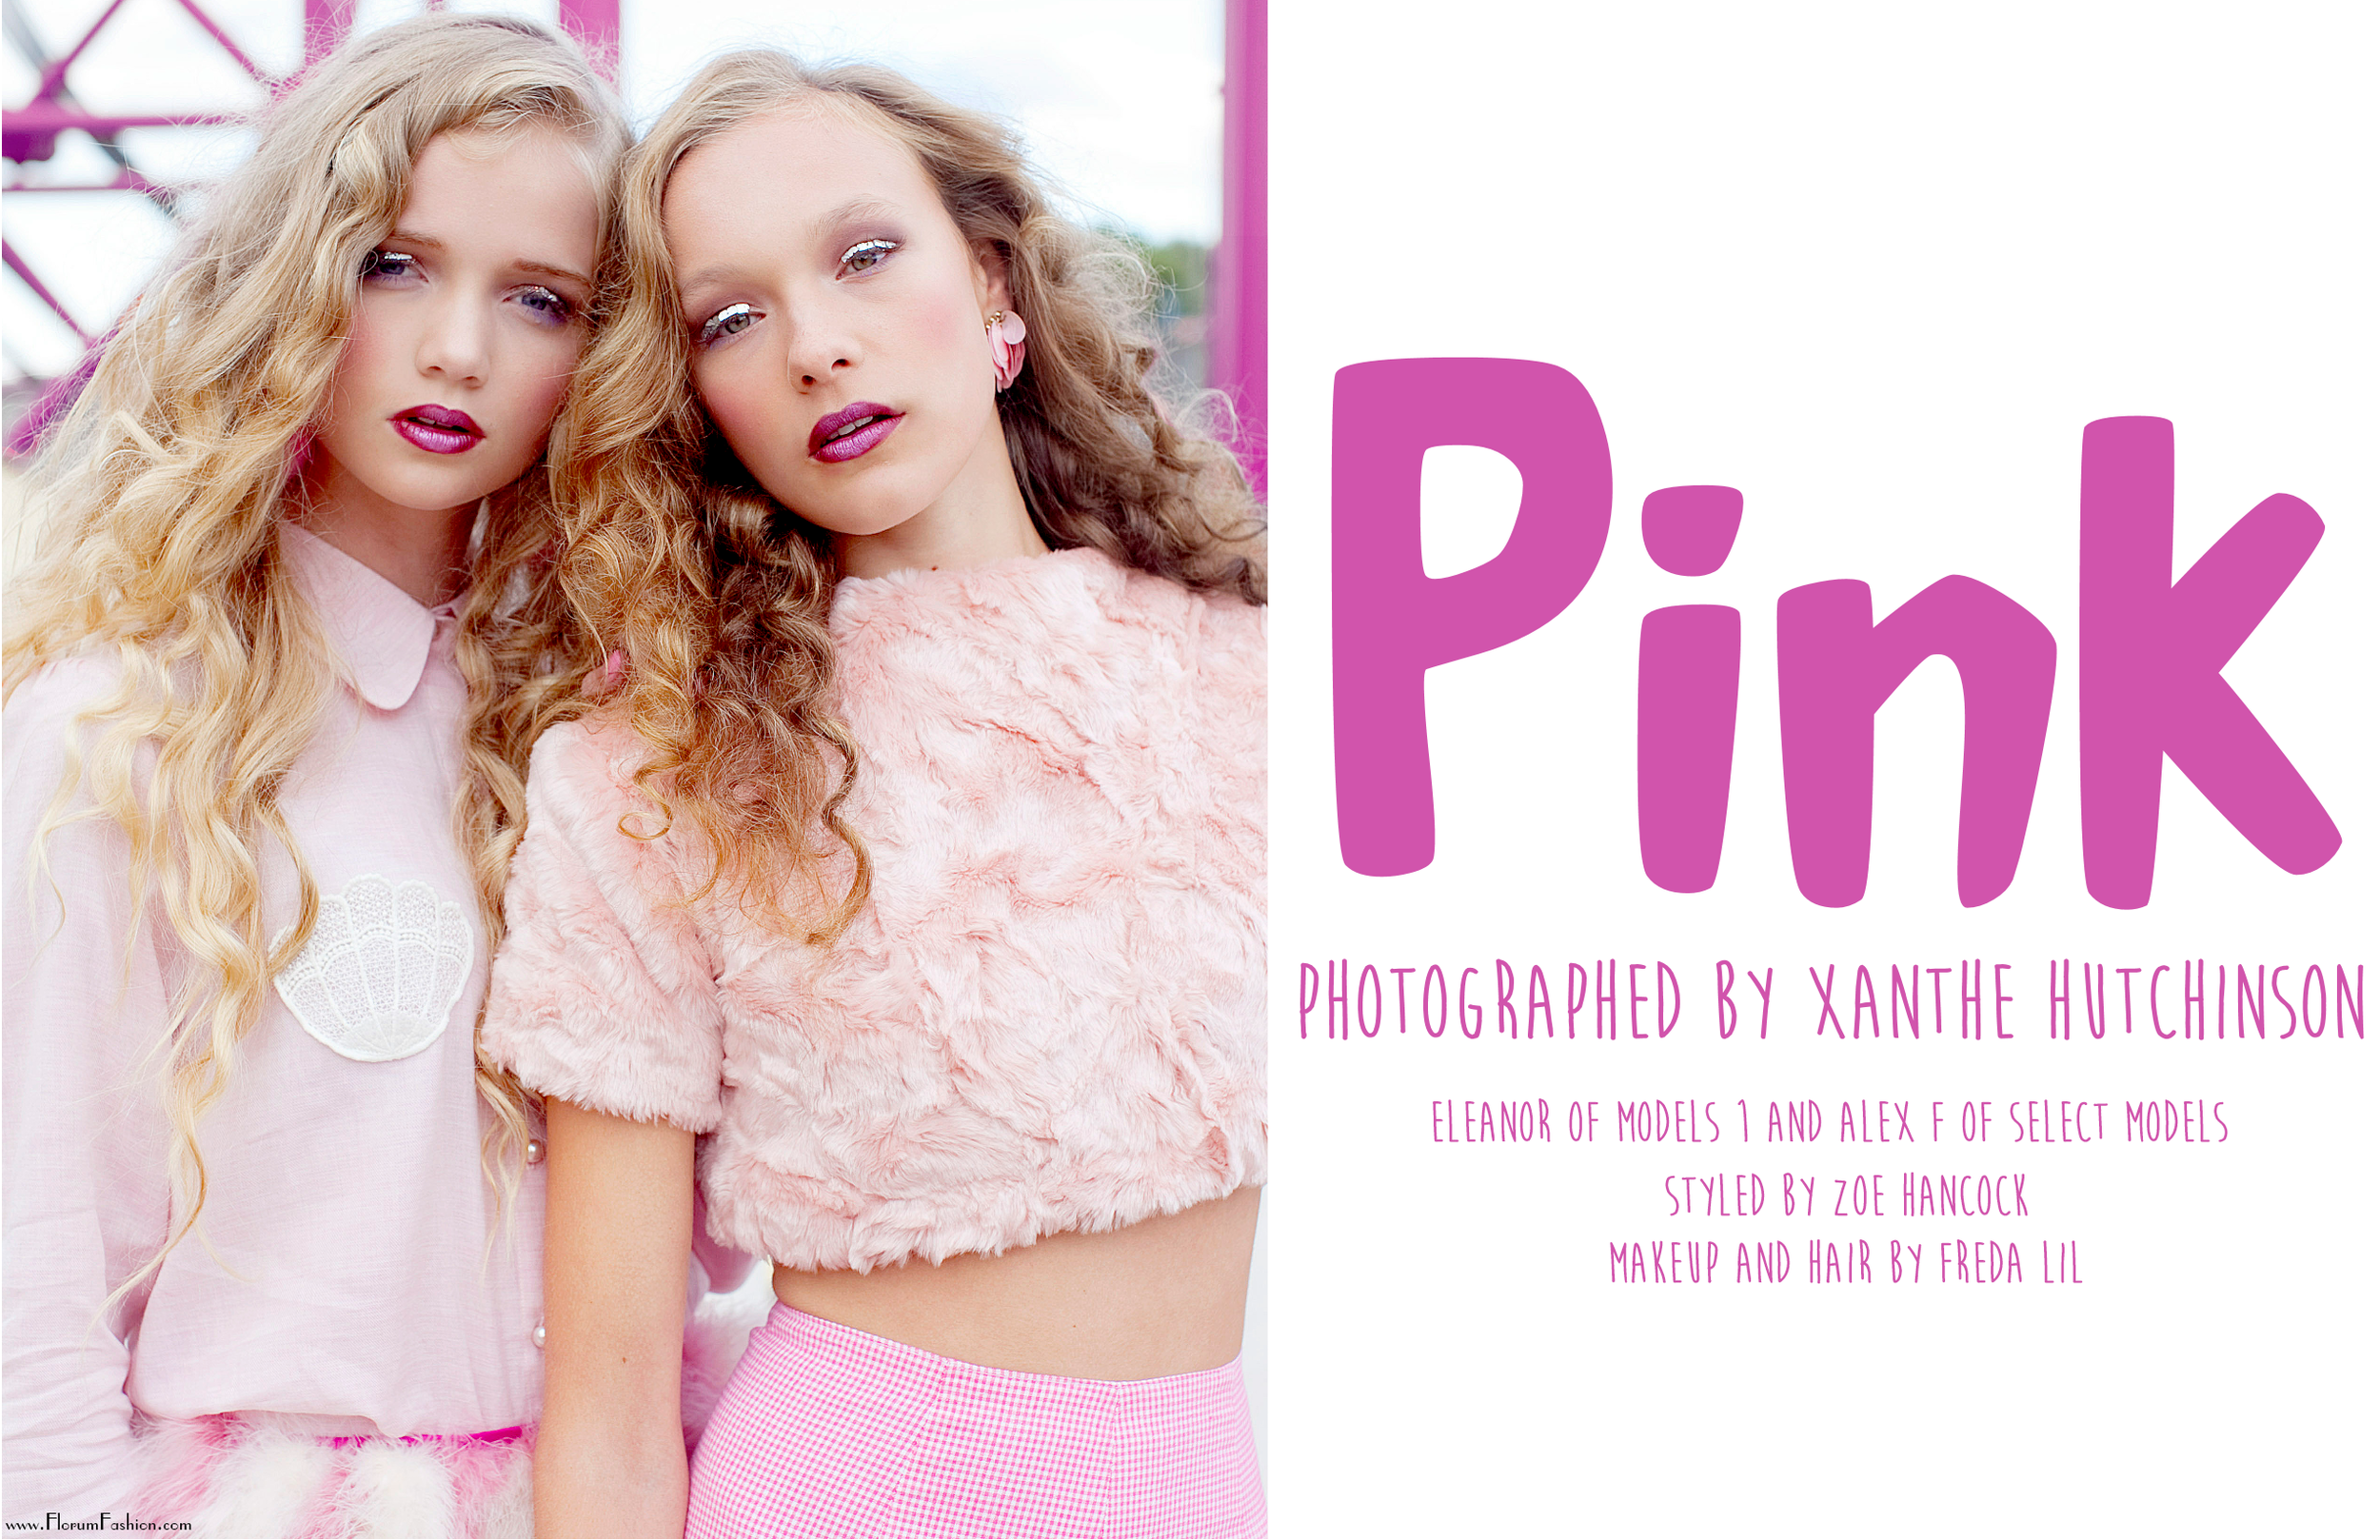 Pink by Xanthe Hutchison - Florum Fashion Magazine - styled by Zoe Hancok - We are Cow - Editorial Archive January 2014 - Slow Fashion - Green fashion